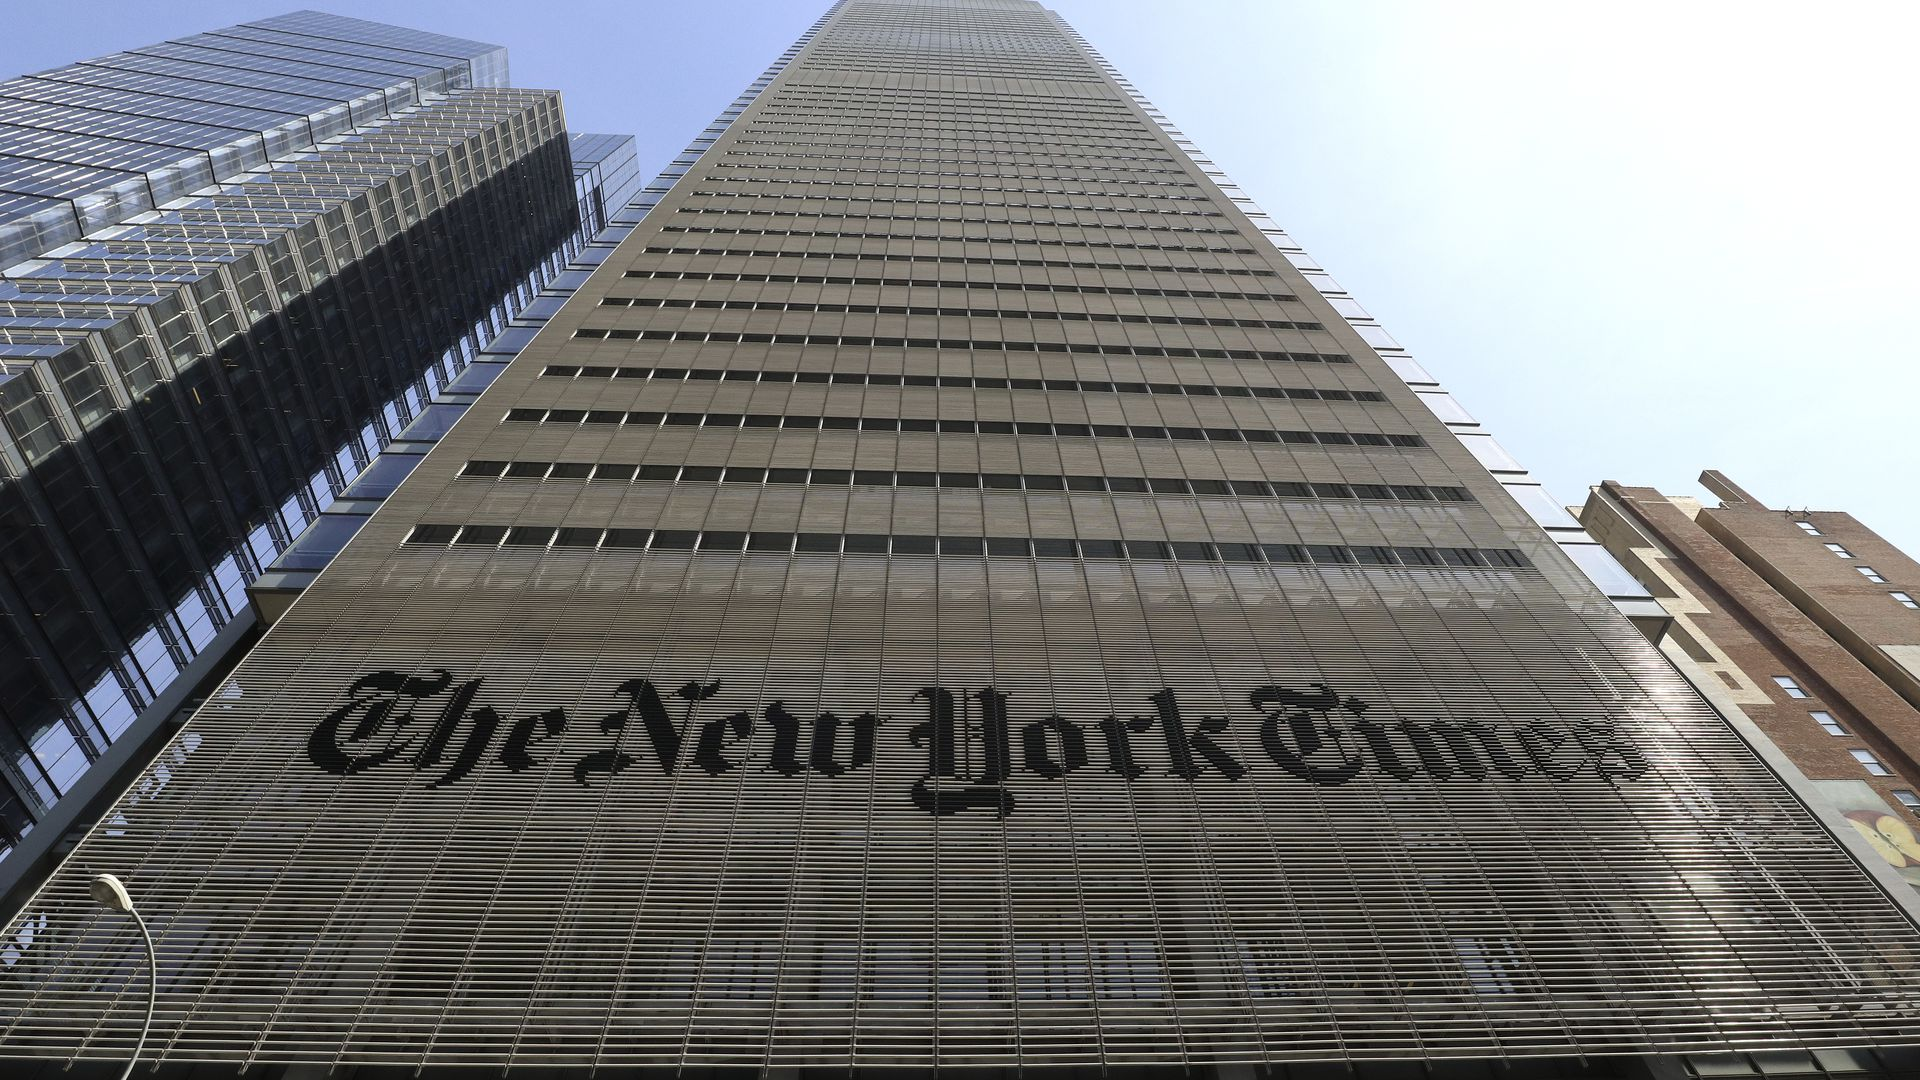 A photo of the NYT building